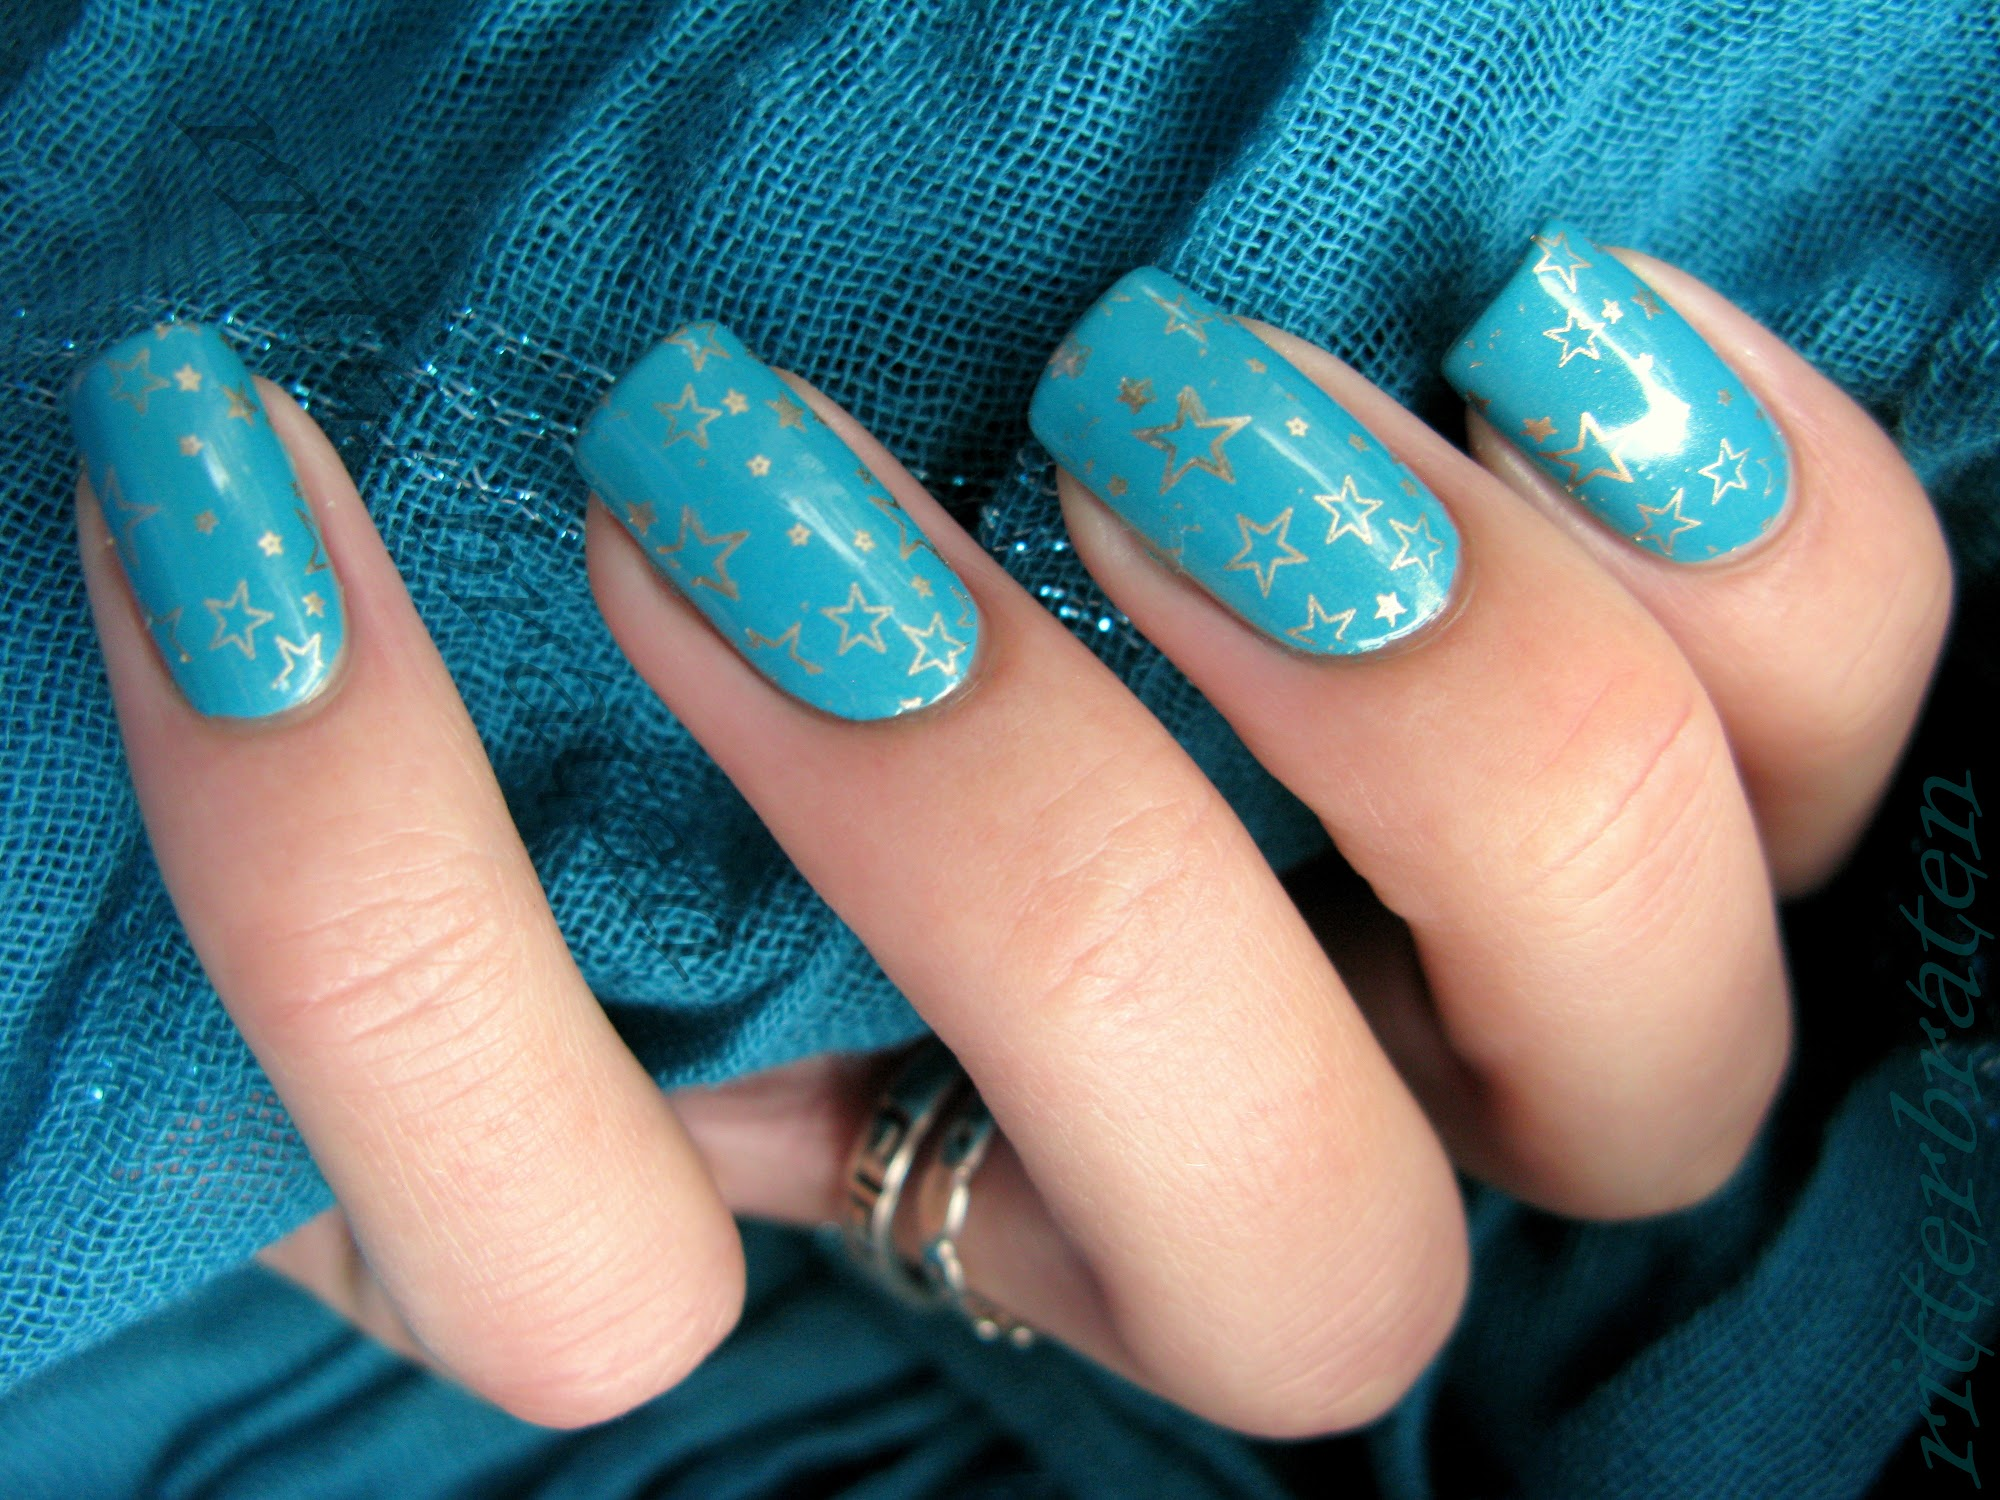 China Glaze Custom Kicks swatch konad stamping